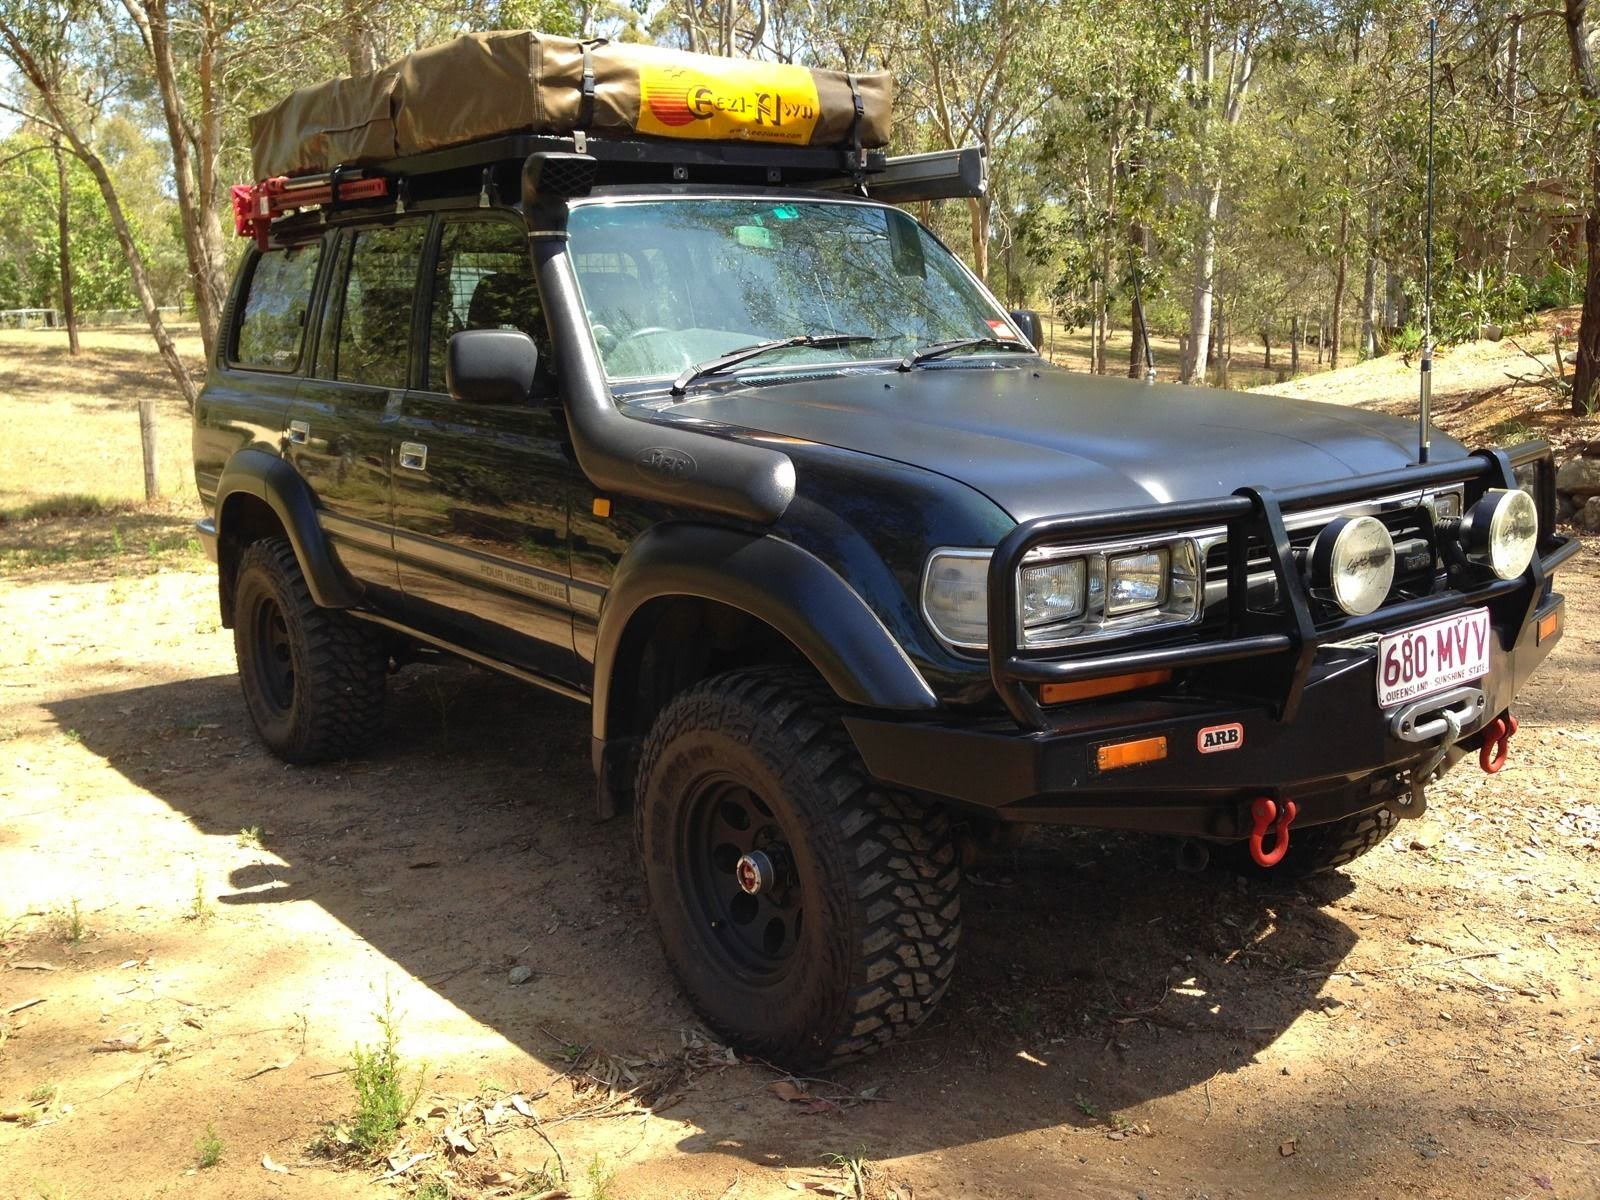 1992 toyota landcruiser gxl 80 series with camper 4x4 cars. Black Bedroom Furniture Sets. Home Design Ideas